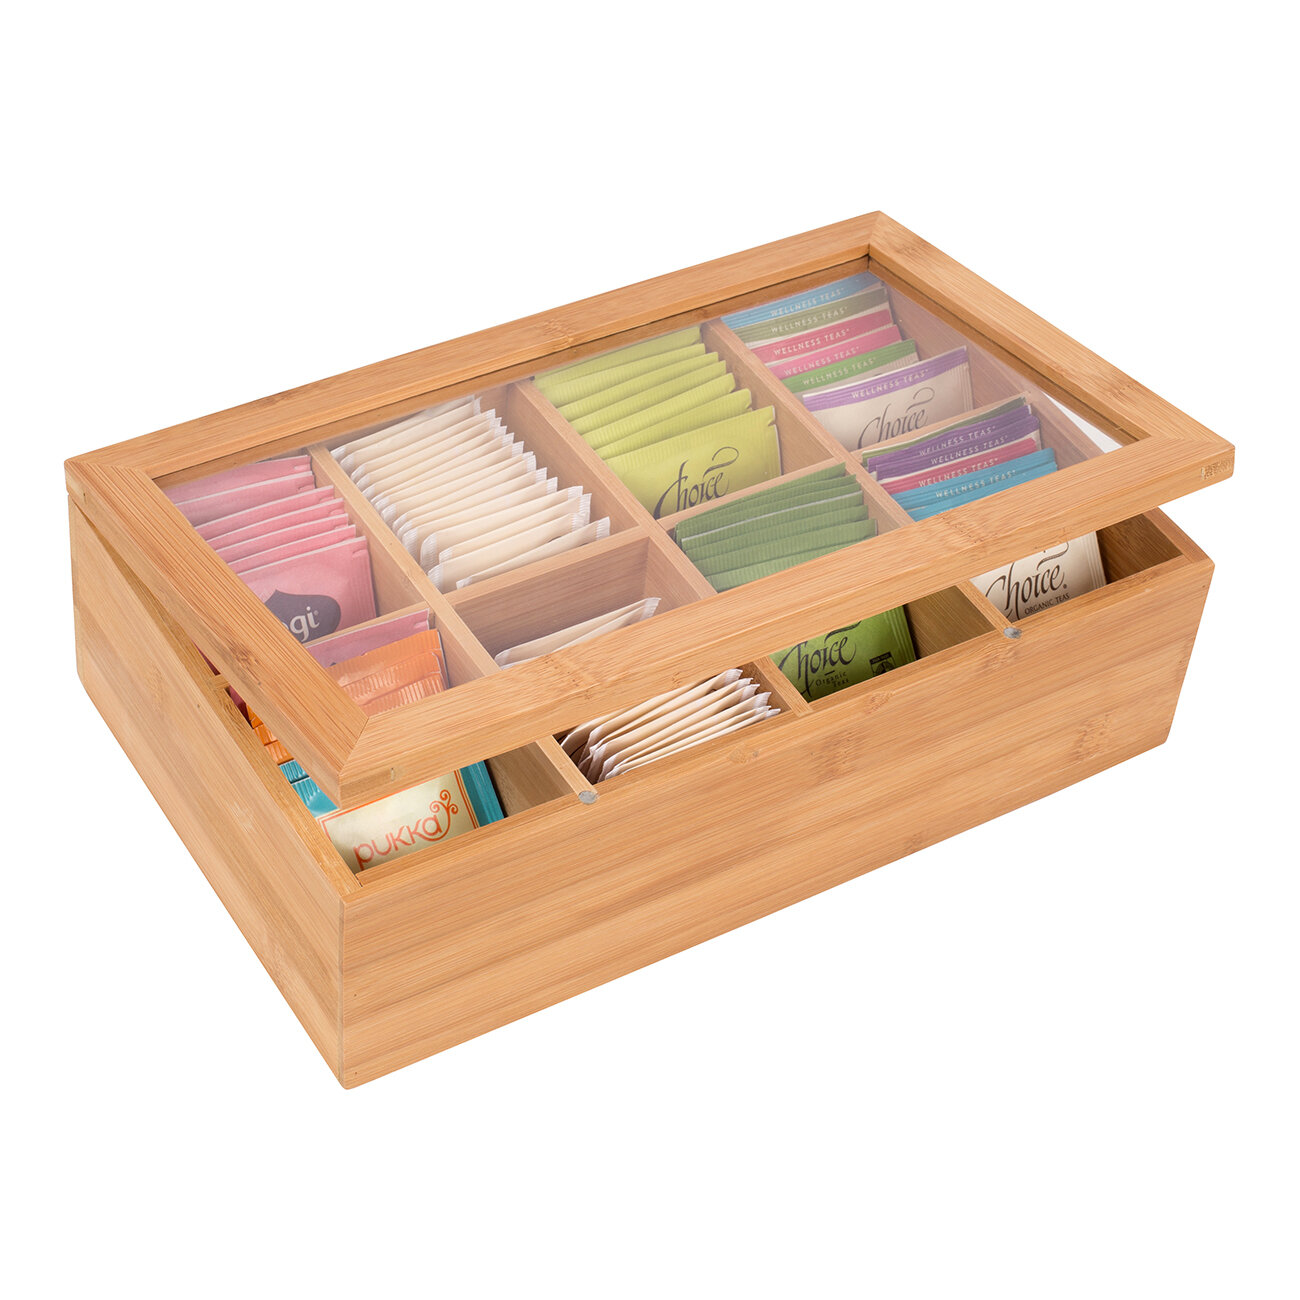 Beyond Your Thoughts Bamboo Tea Box Tea Chest Adjustable 16 Compartments Tea Storage Holder Organizer with Latching Lid